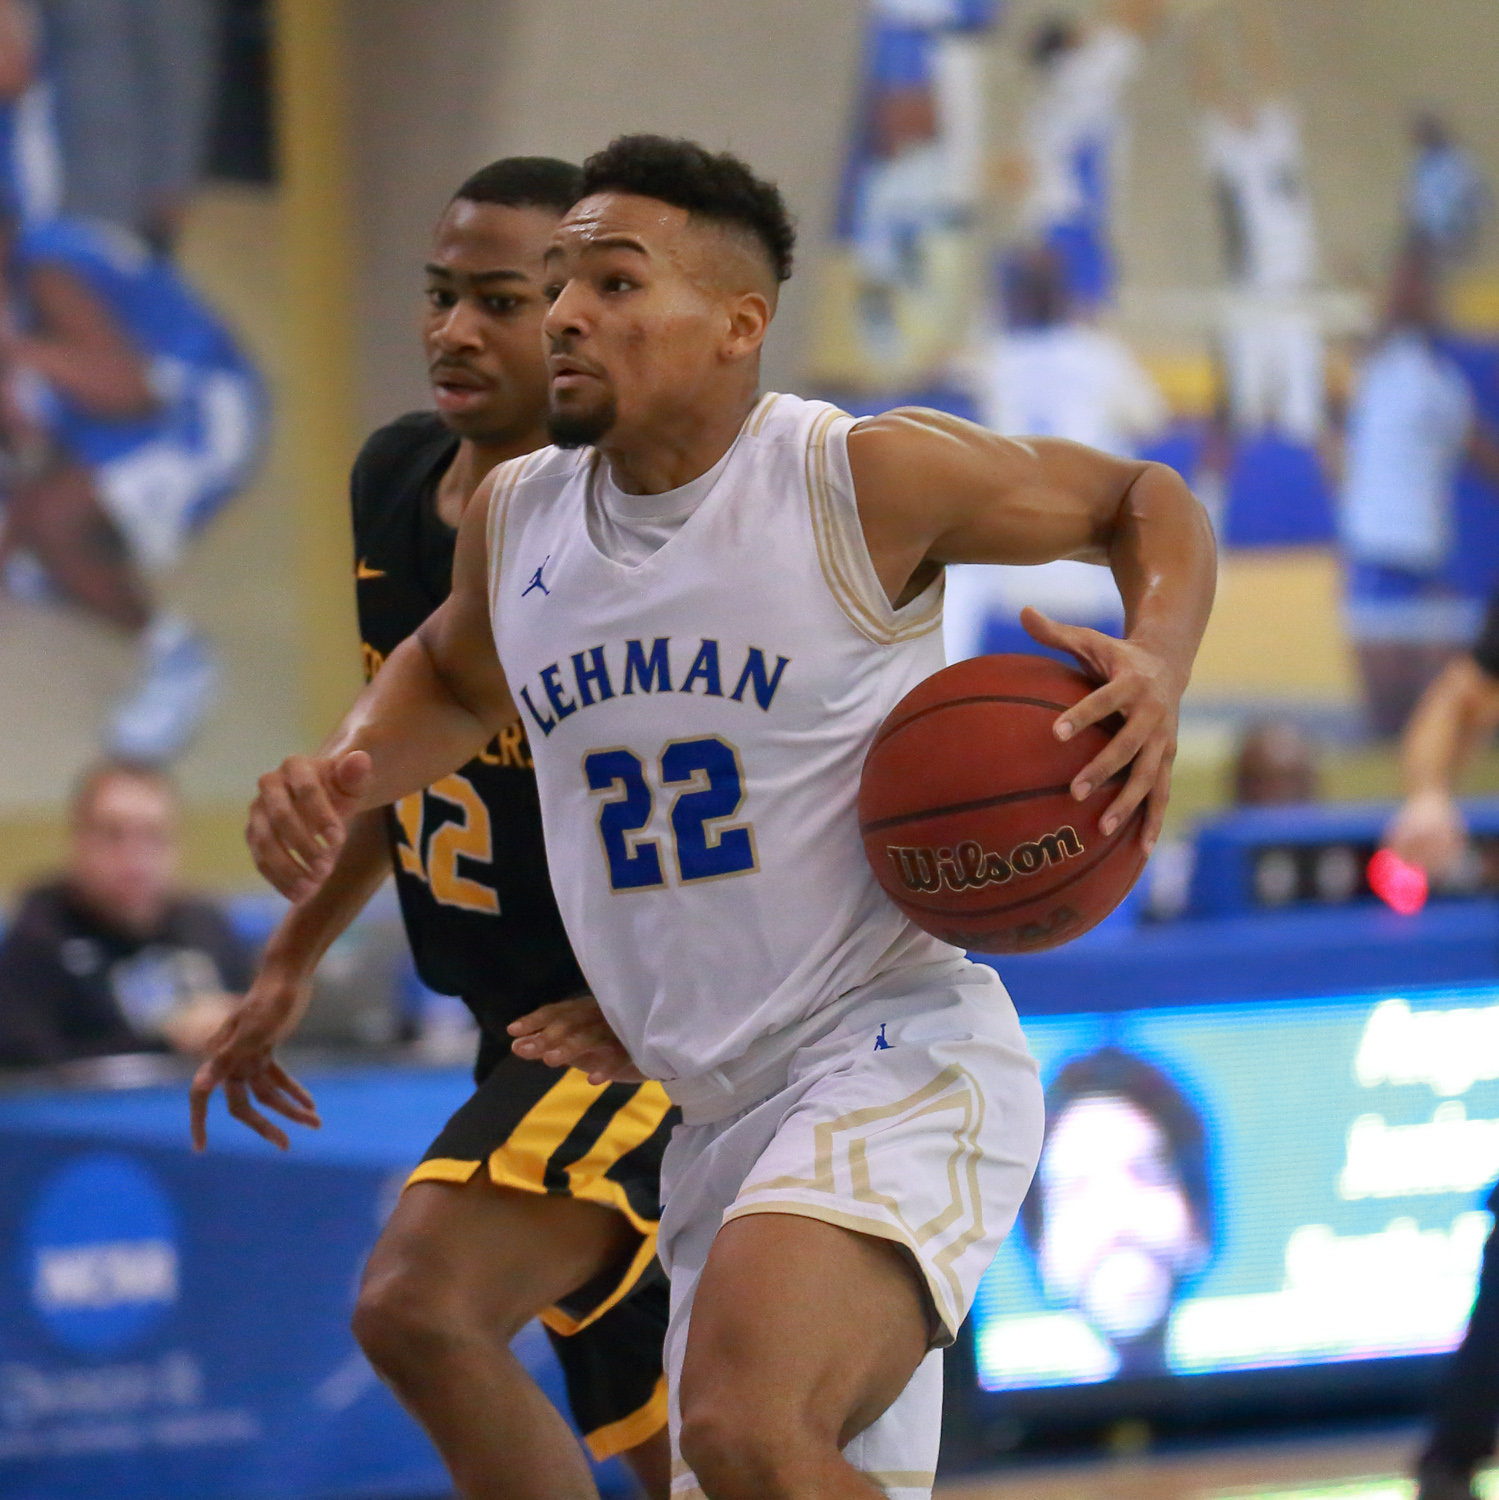 Lehman senior Tommy Batista had a stat-stuffing day in the Lightning's win over Medgar Evers with eight points, three rebounds, three steals and three assists.